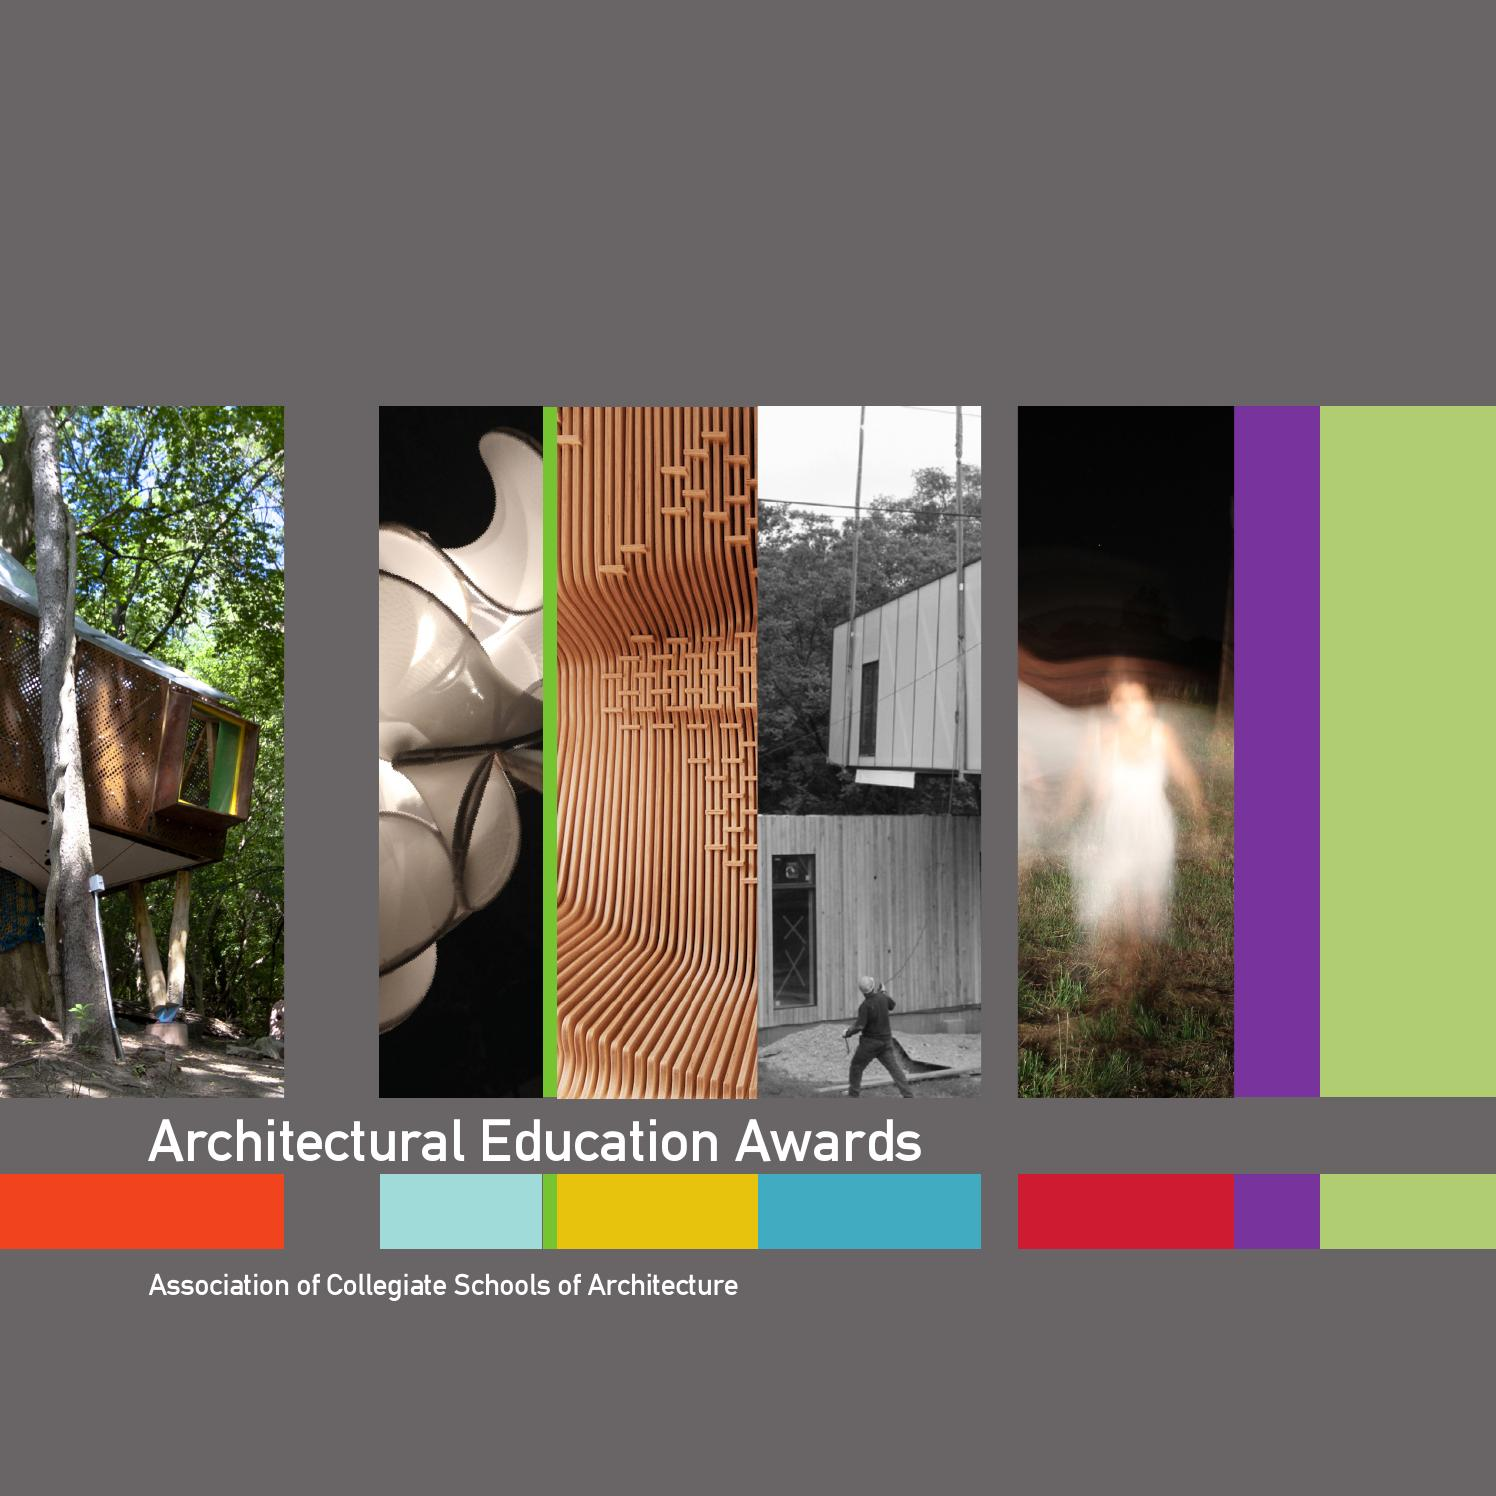 2013 14 ACSA Architectural Education Awards Book By Association Of Collegiate Schools Architecture